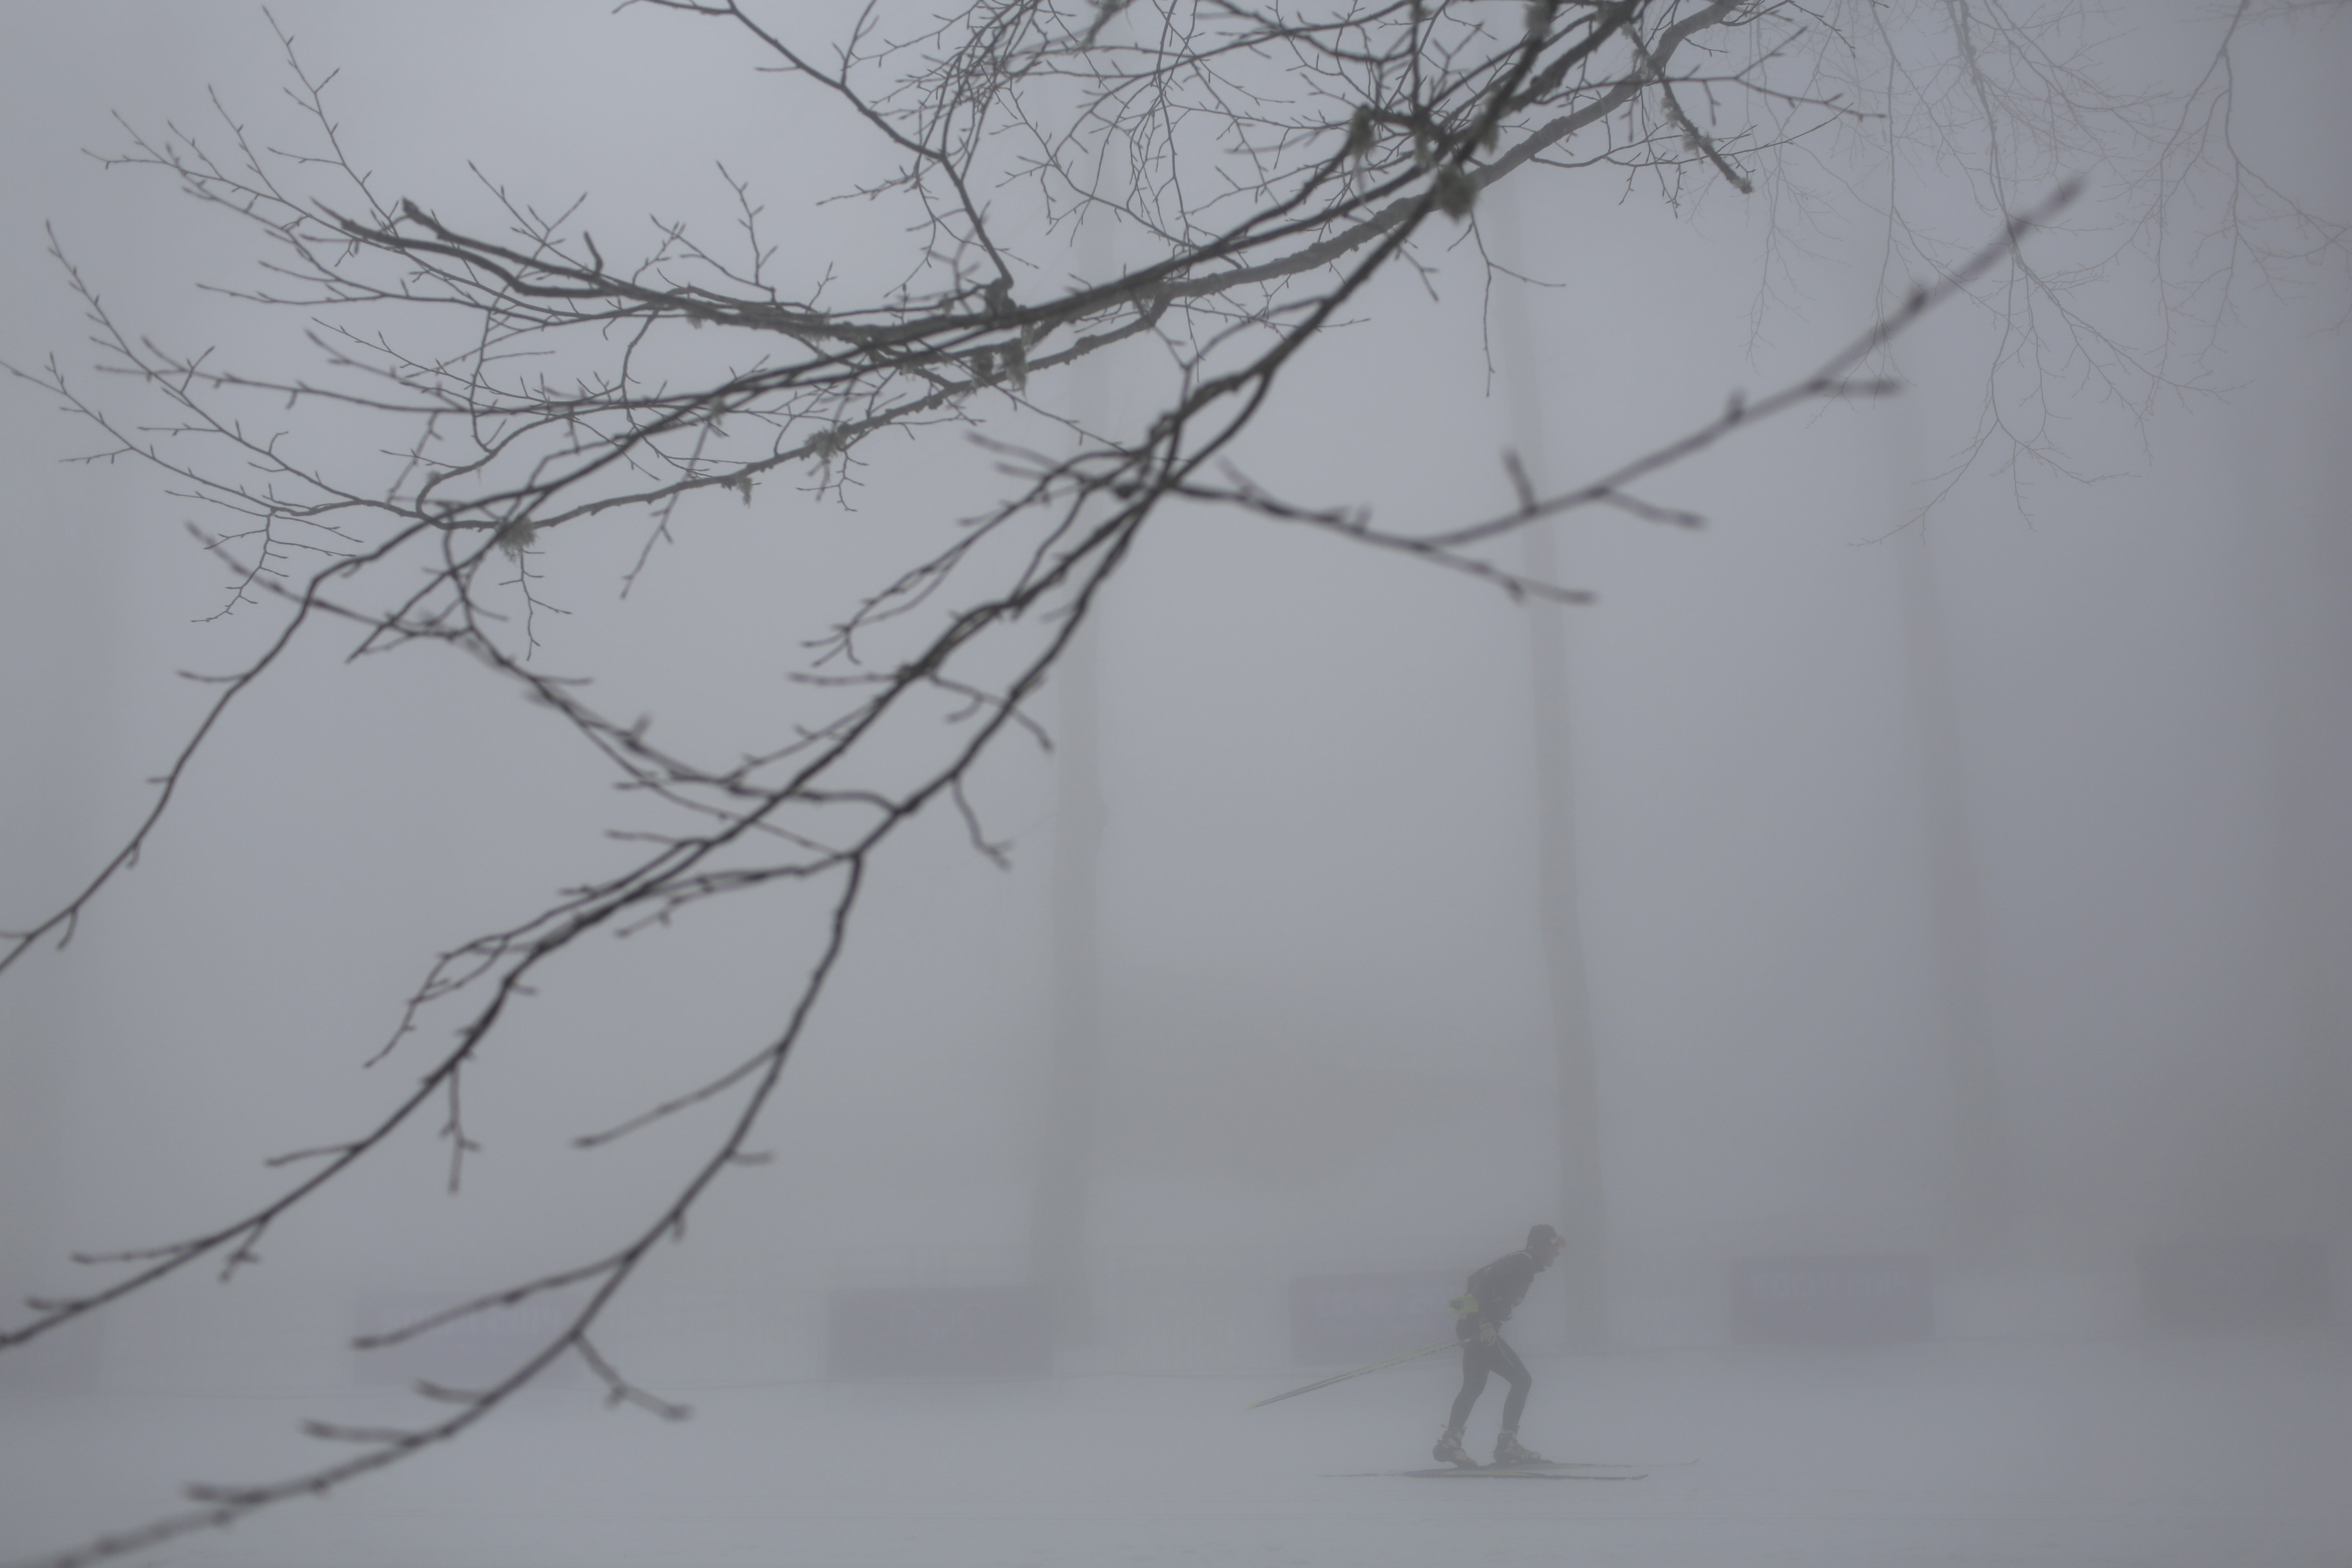 An athlete skis in thick fog at the Laura biathlon center, at the 2014 Winter Olympics, Monday, Feb. 17, 2014, in Krasnaya Polyana, Russia. The men's 15-kilometer mass-start biathlon race at the Sochi Olympics has been delayed due to fog, one day after the event had been called off for the same reason. (AP Photo/Felipe Dana)